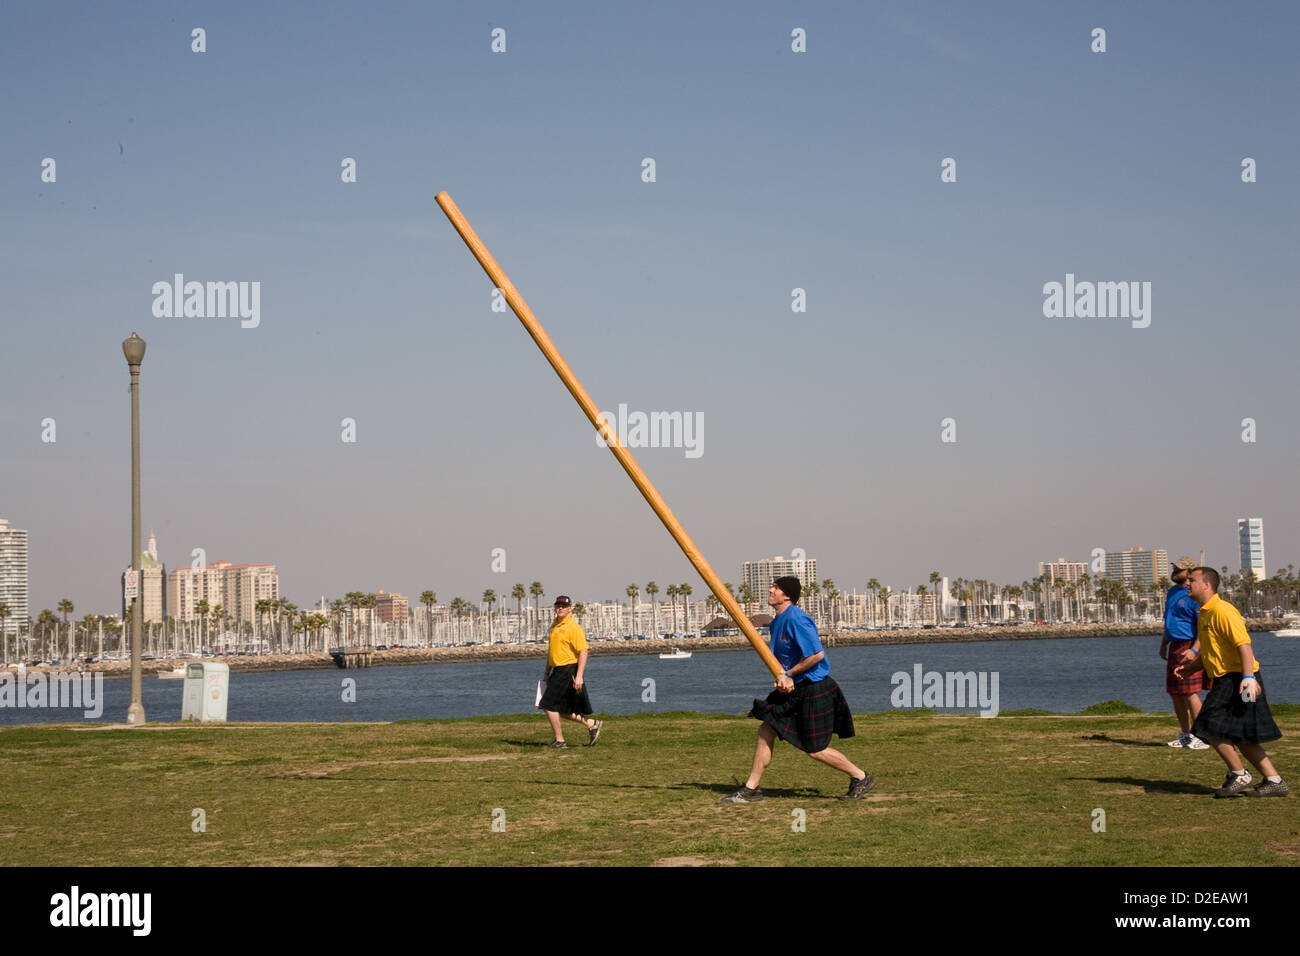 The caber toss competition at the Scotsfest Scottish Festival and clan gathering at the Queen Mary in Long Beach, - Stock Image